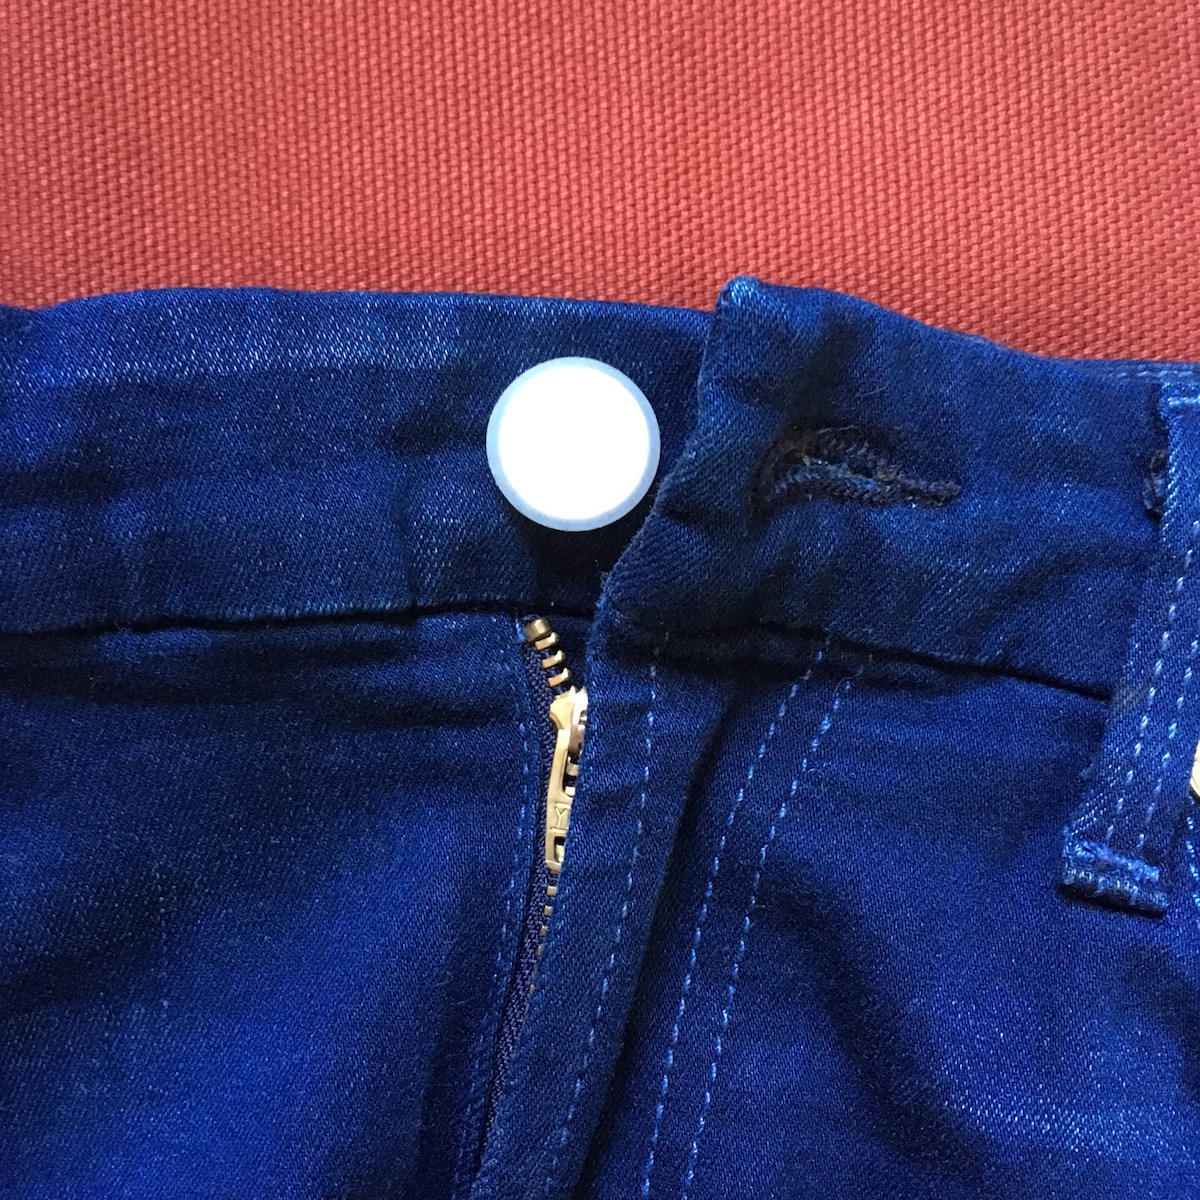 Holé Button Cover Review